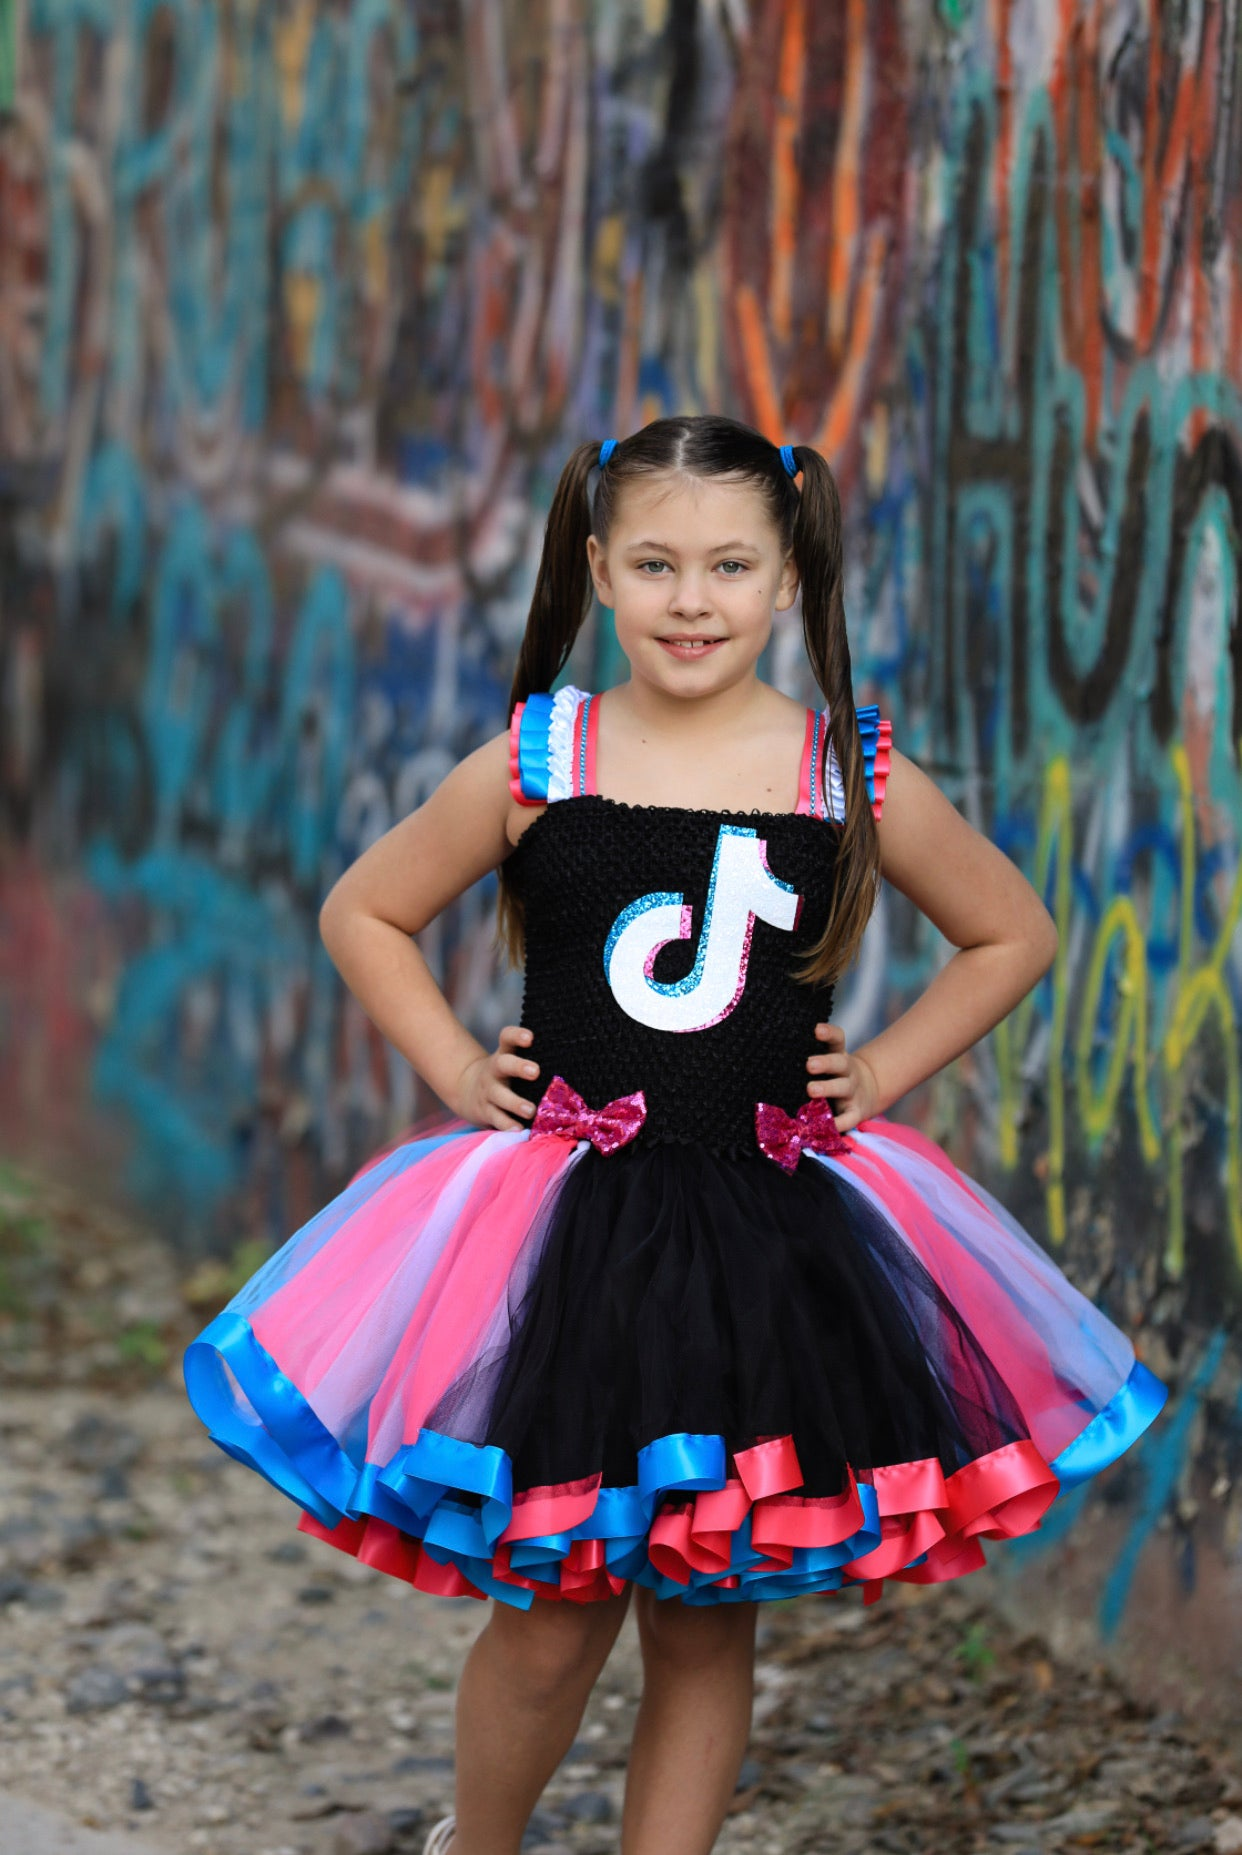 Taco Birthday Tutu Outfit-Girls Taco Birthday Shirt and Tutu-Taco TWOsday Birthday Outfit-Fiesta Birthday Tutu Outfit *Bow NOT Included*